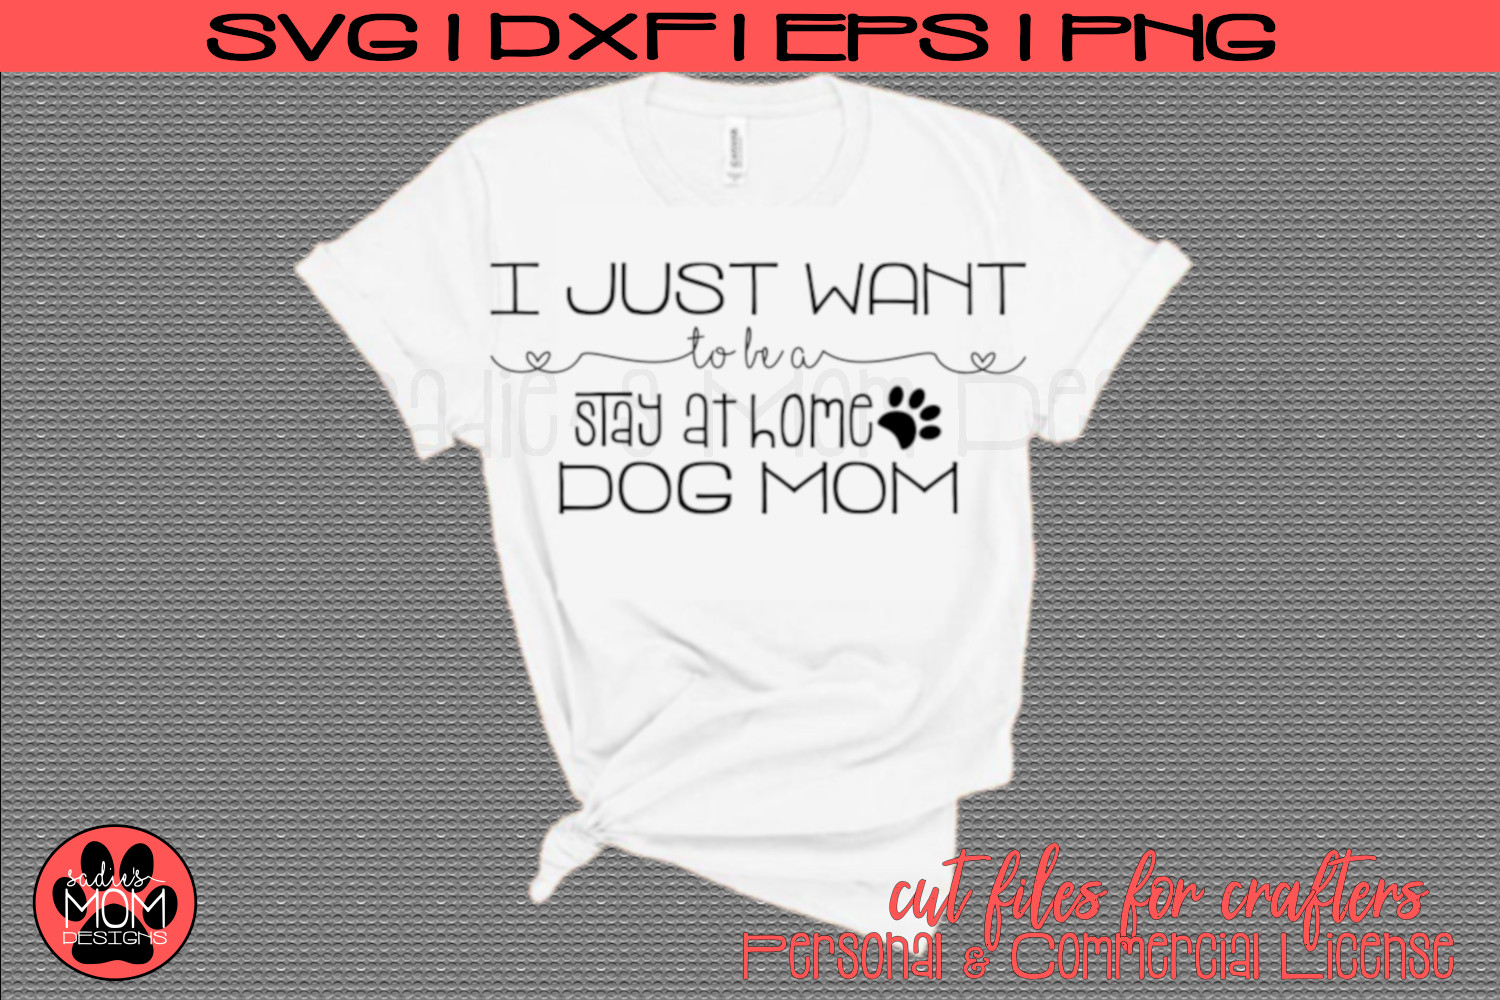 I Just Want to be a Stay At Home Dog Mom | SVG Cut File example image 1